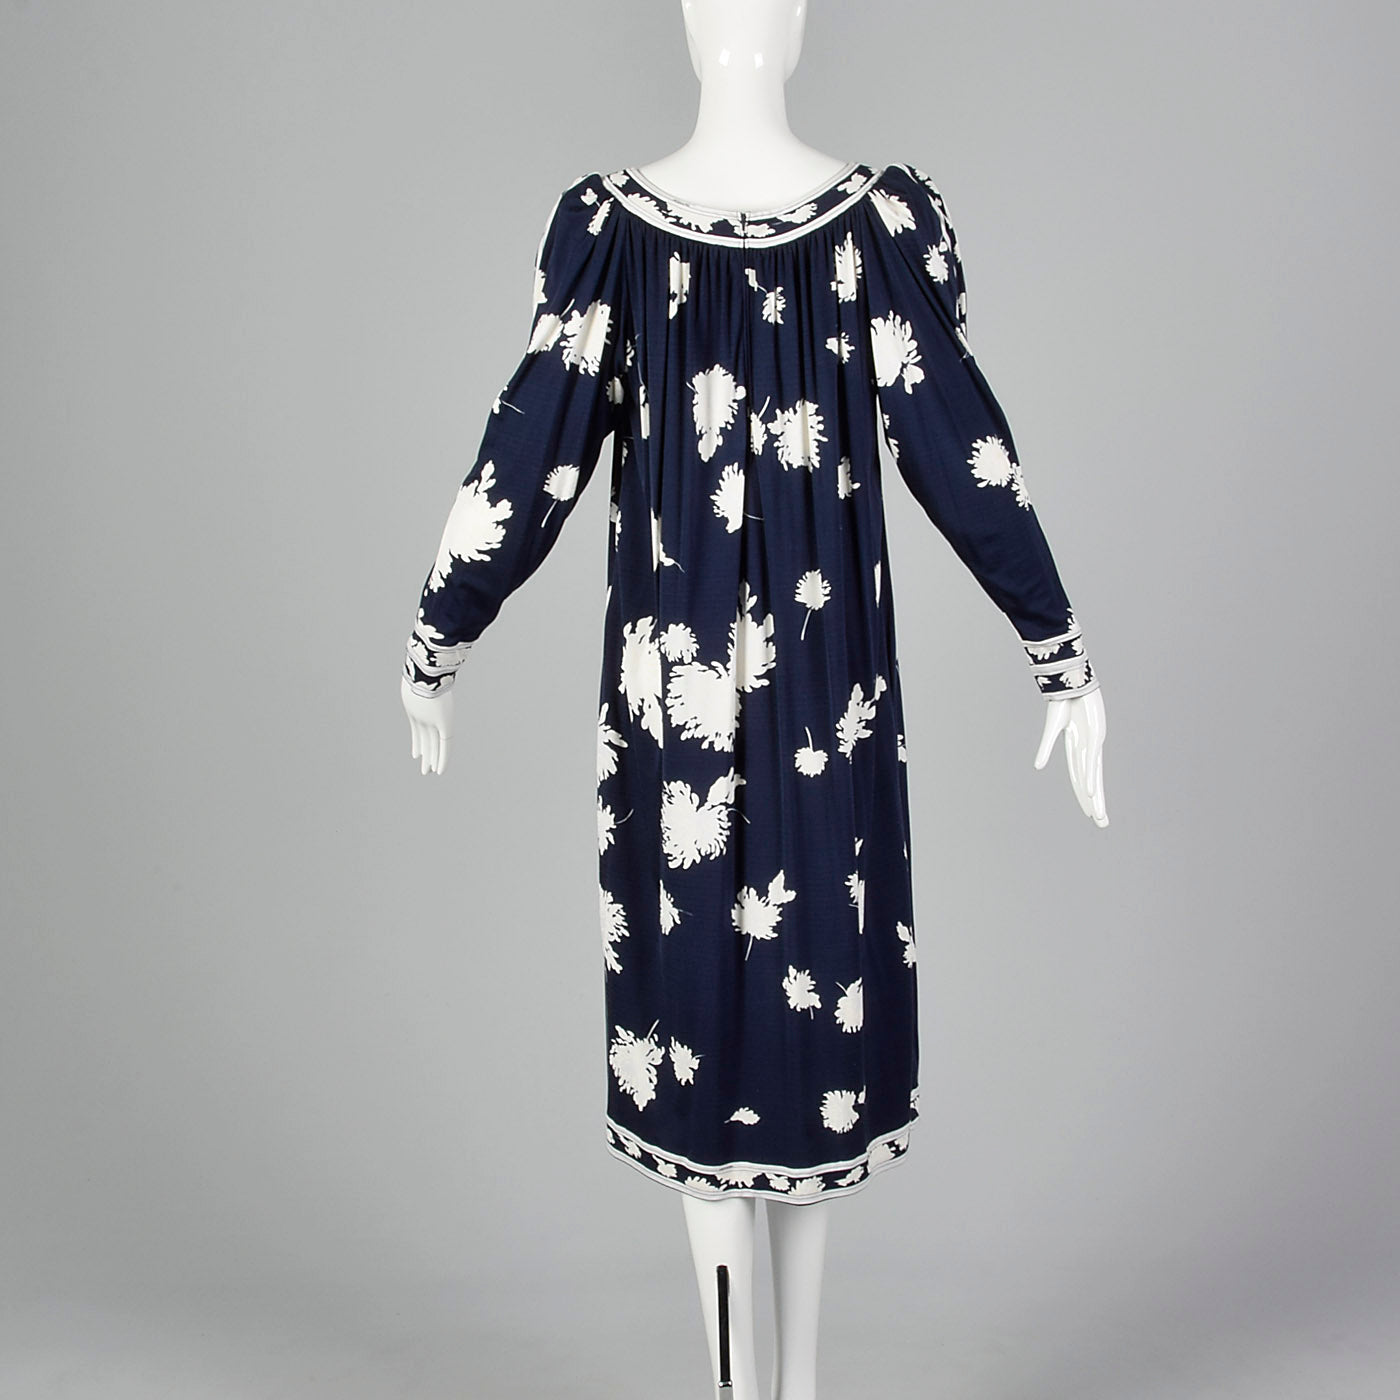 1980s Leonard Paris Navy Blue Floral Dress